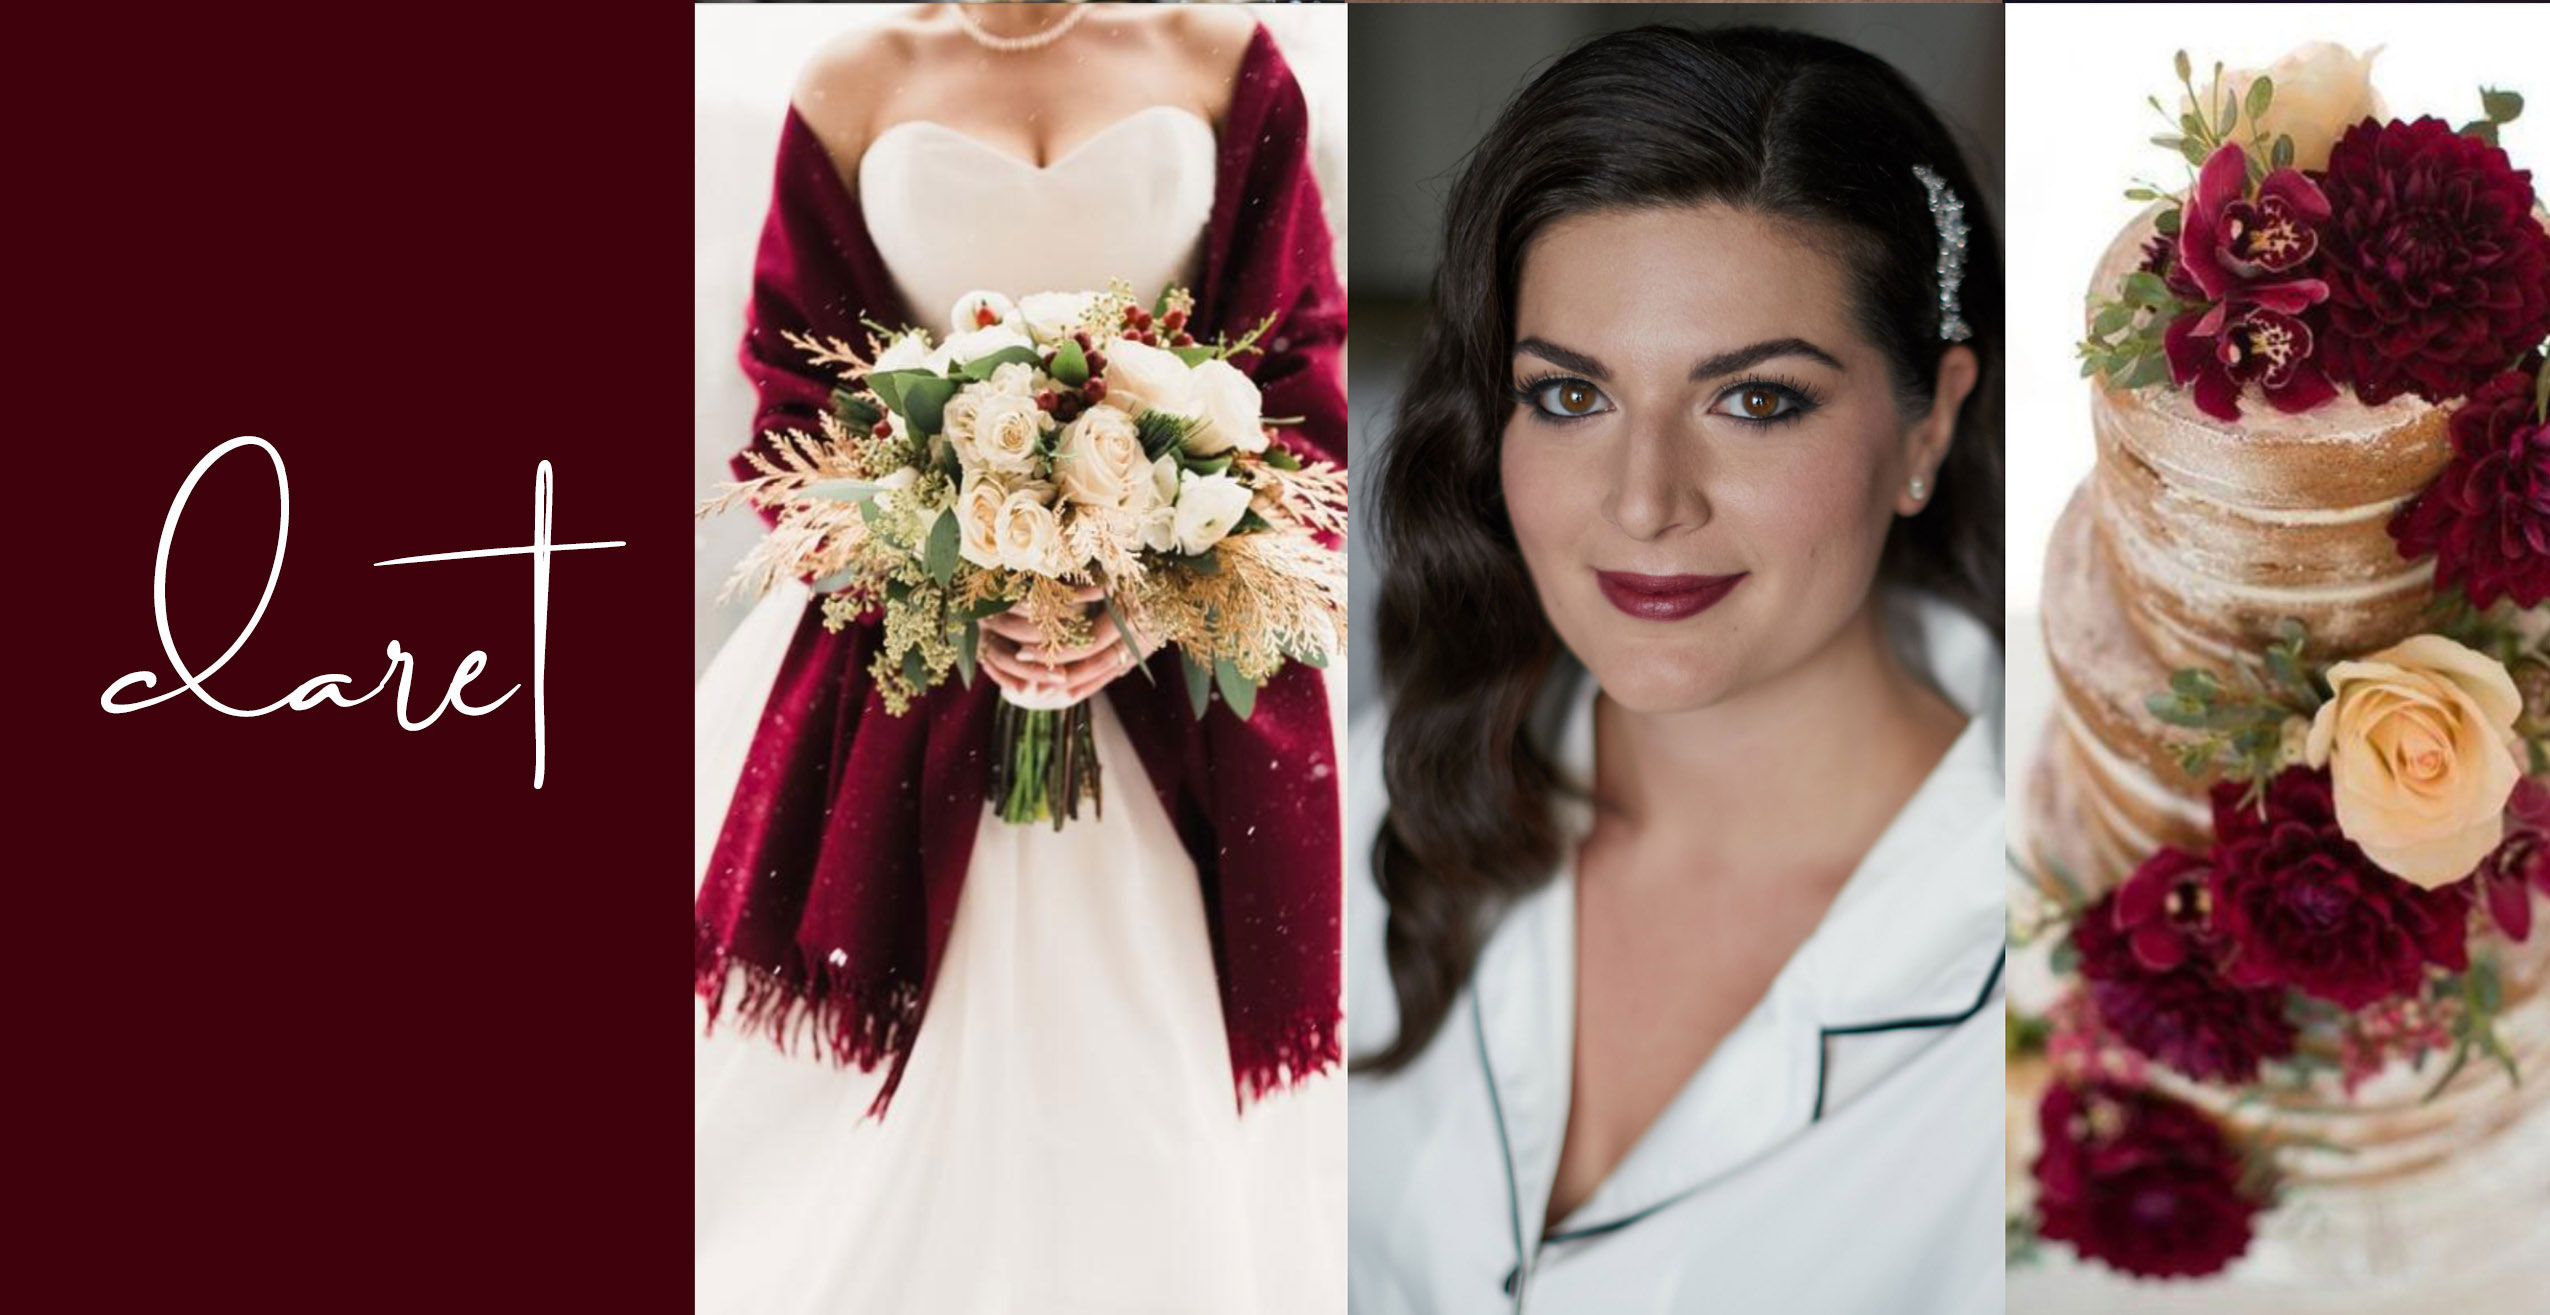 Berry lip color on a Bride with burgundy and gold wedding accents